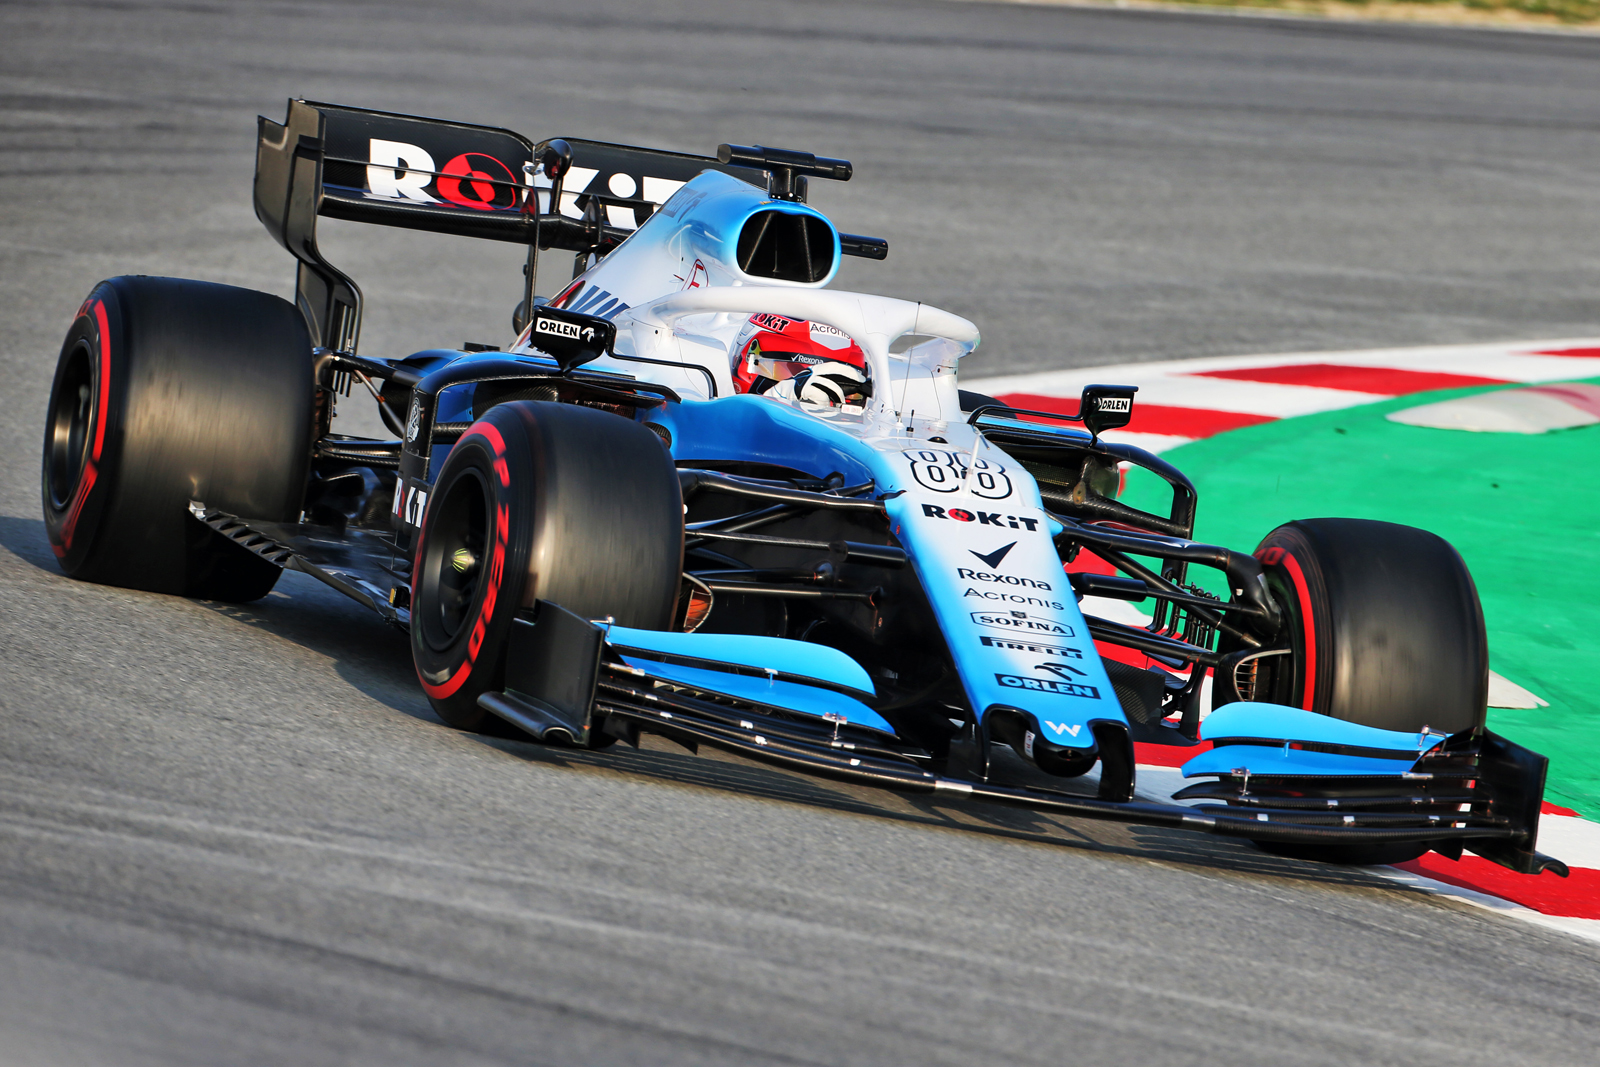 WilliamsF1_Robert_Kubica.jpg